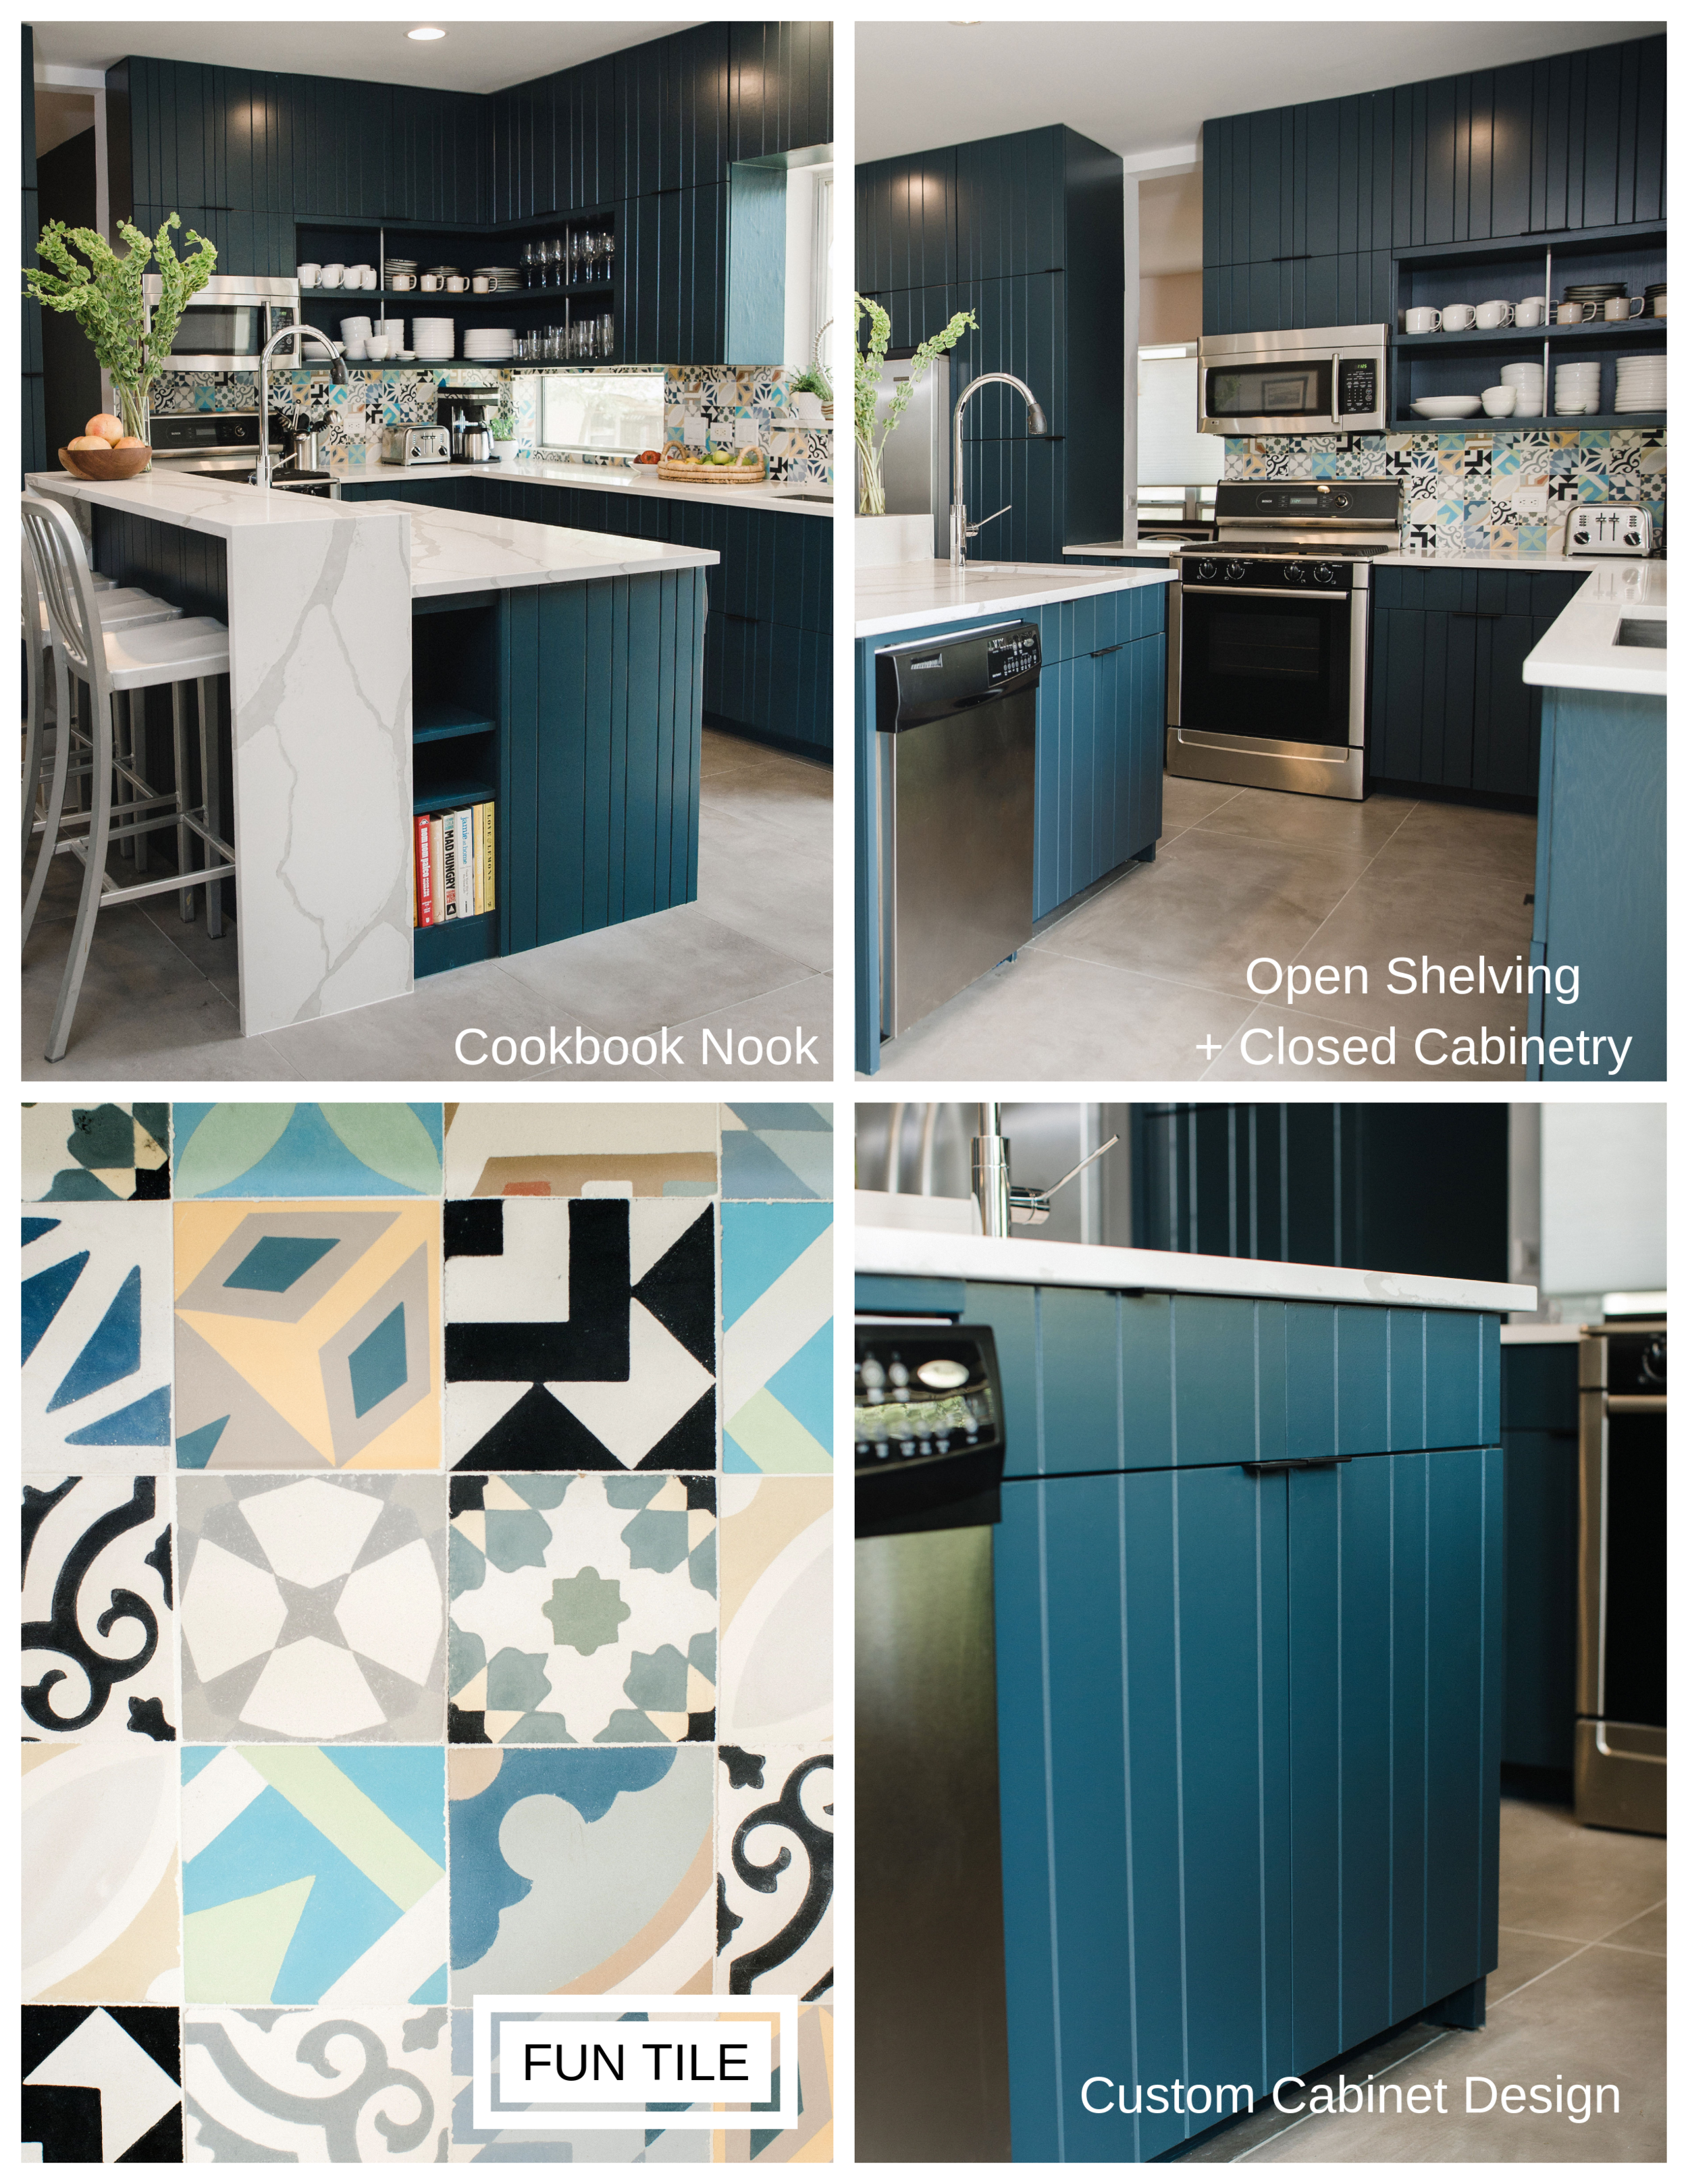 Signs you may be standing in a custom kitchen, top from L to R and clockwise: fun, built-in storage, a combination of storage options: open shelving and closed cabinetry, custom tile patterns and designs, and custom cabinet design!